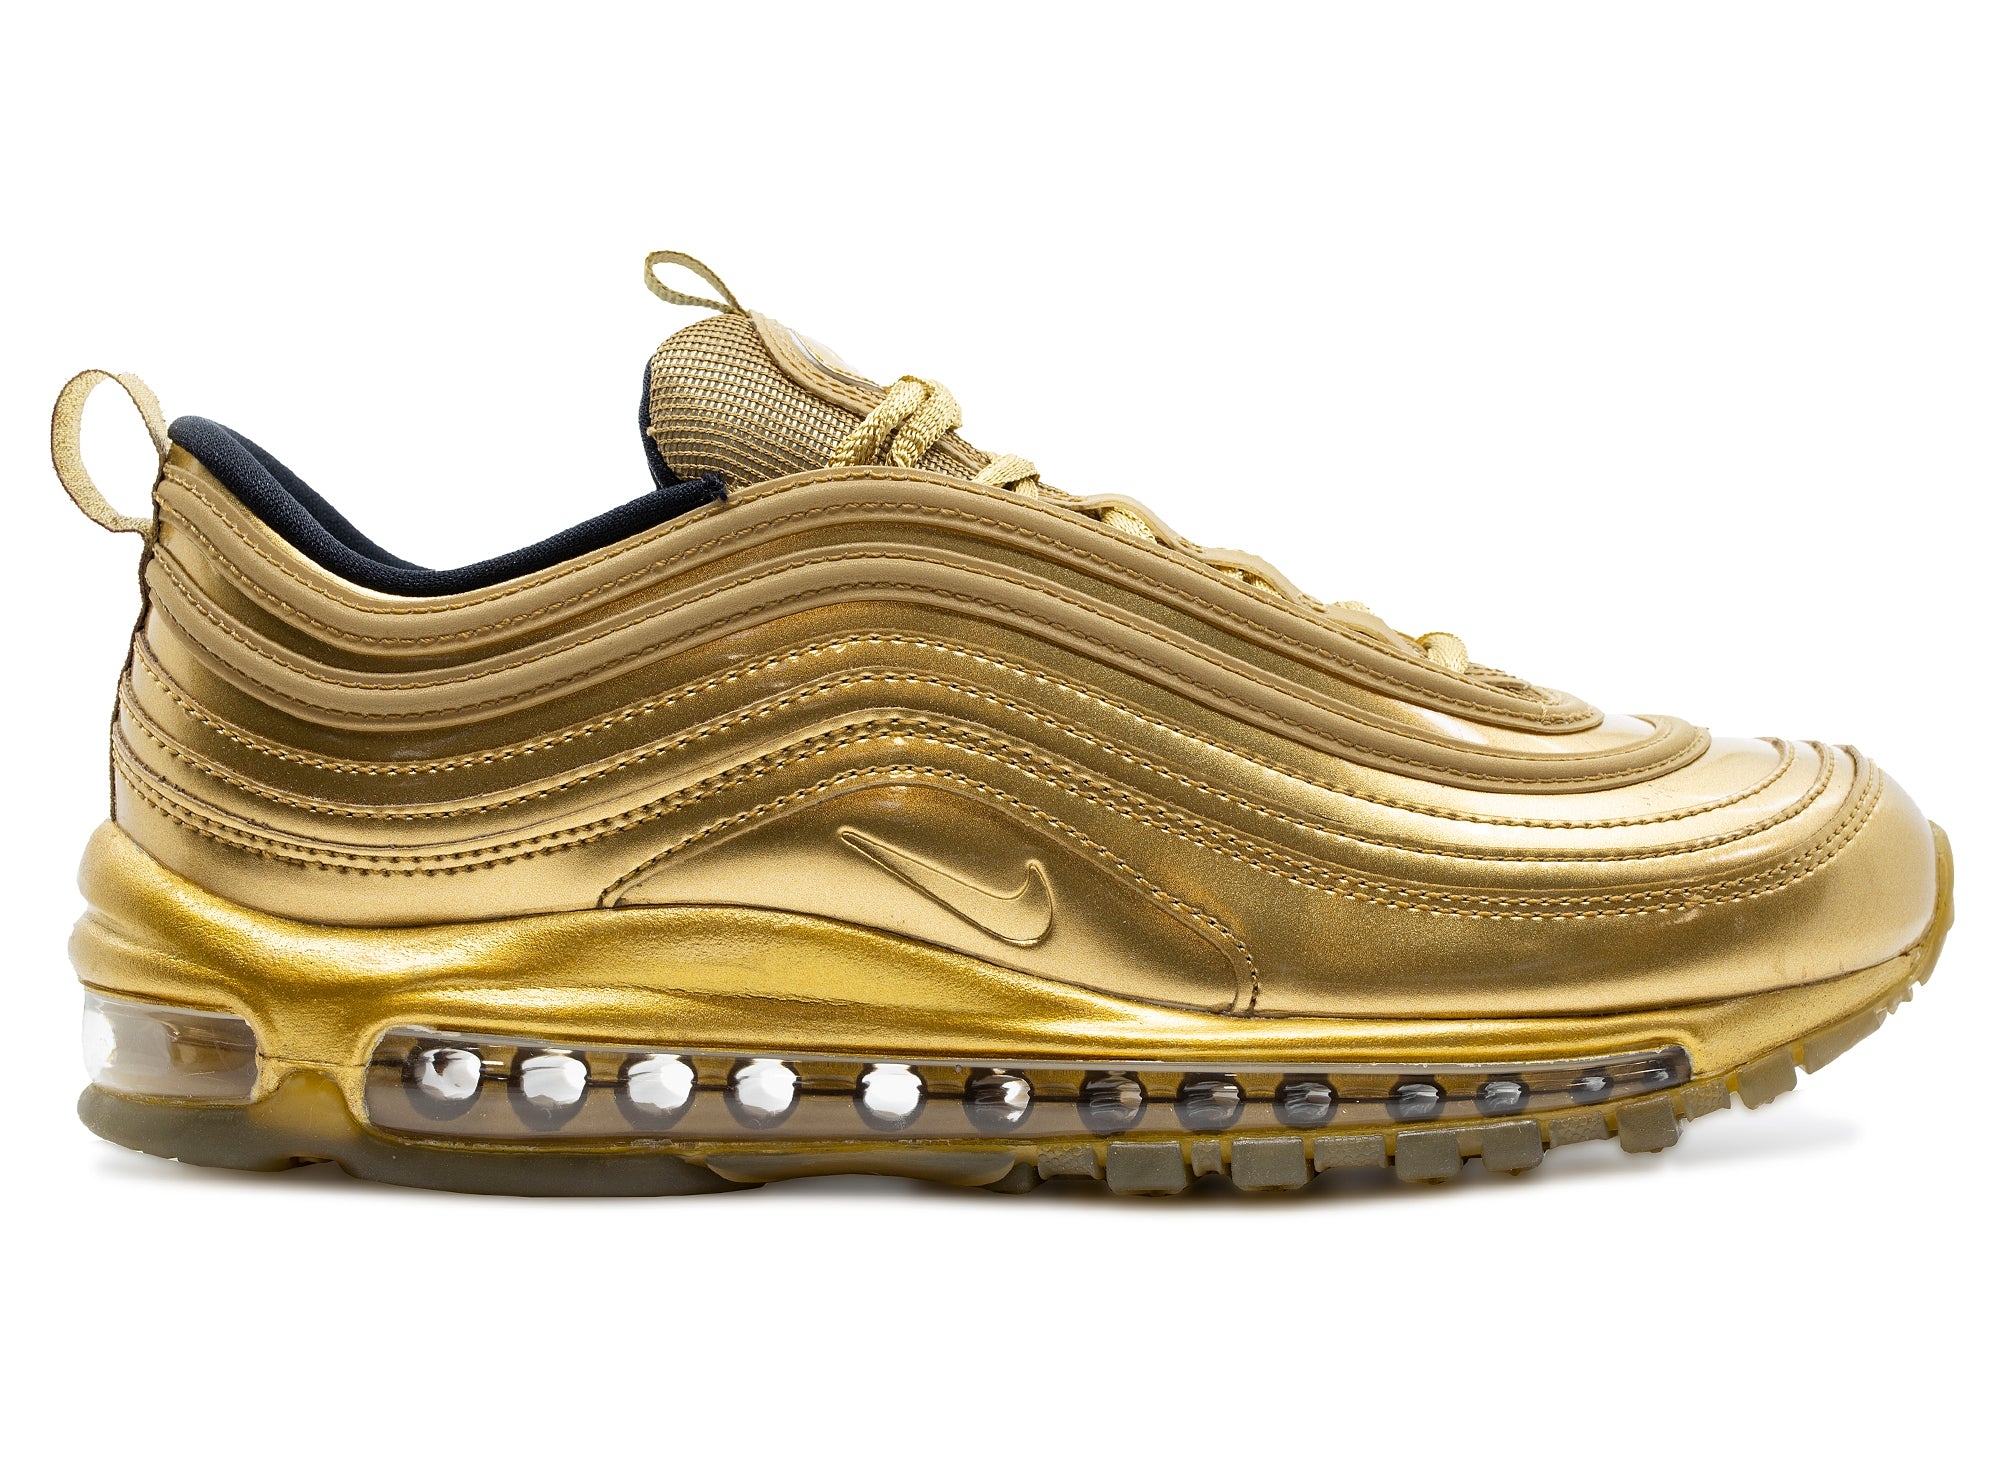 Nike Air Max 97 QS 'Gold Metal' xld